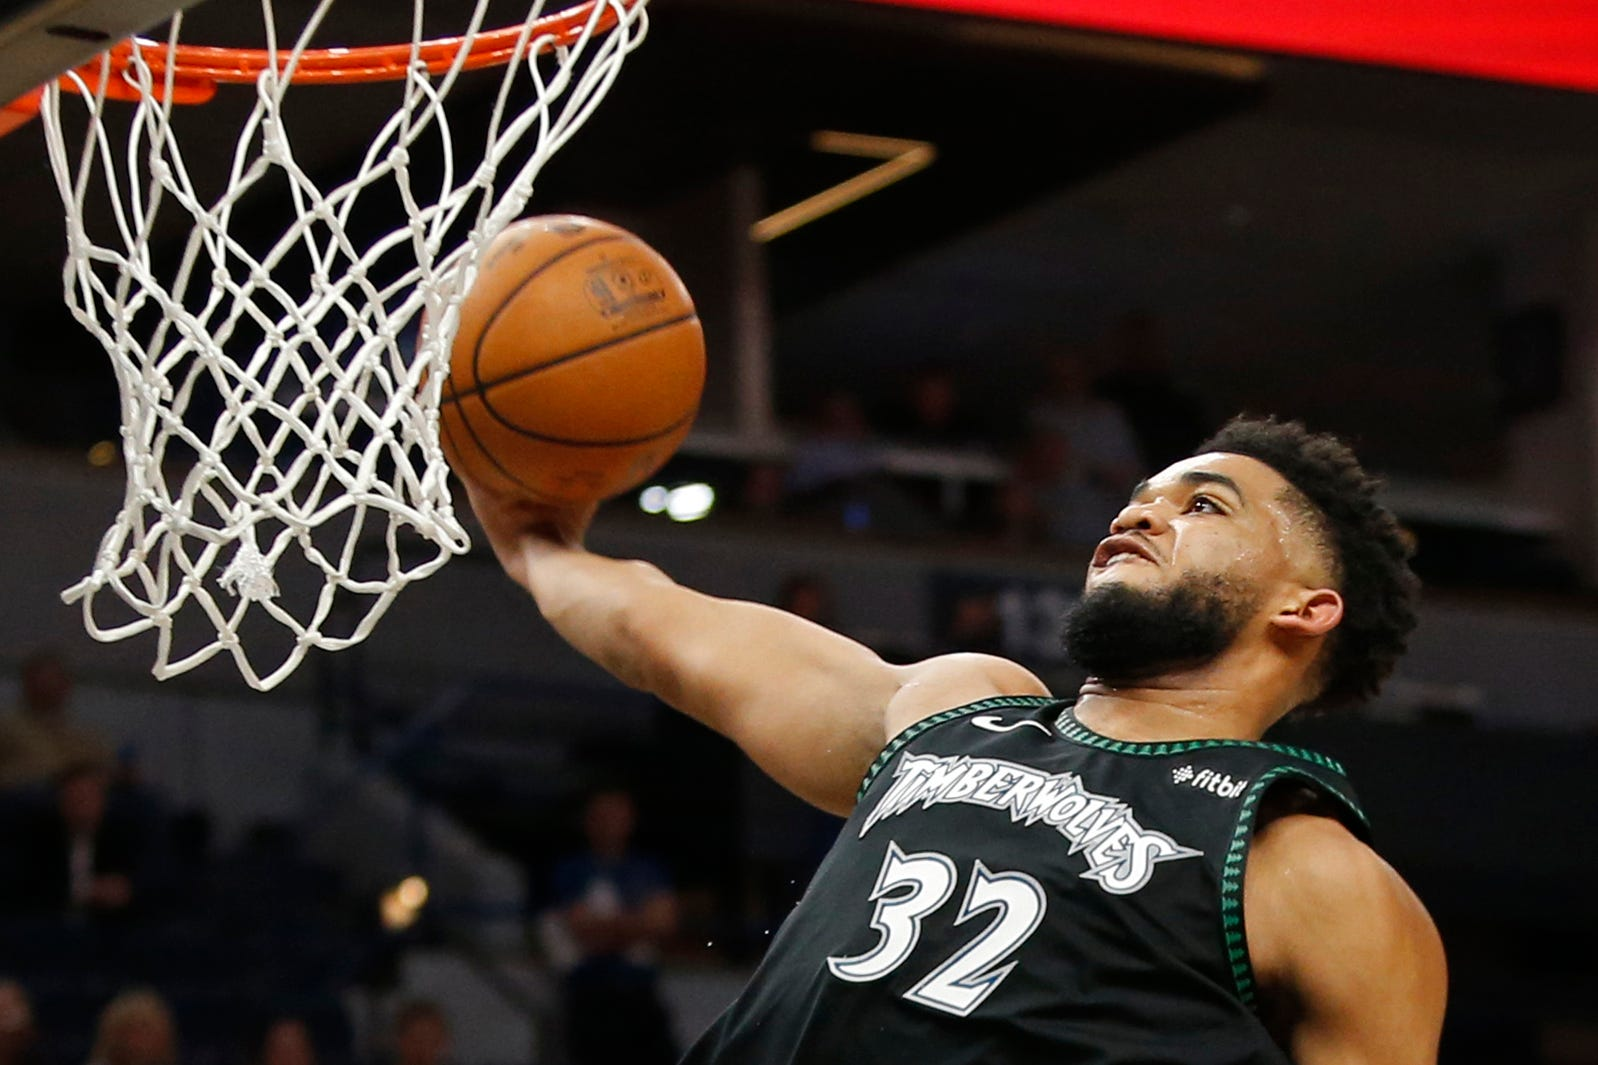 March 5: Minnesota Timberwolves forward Karl-Anthony Towns dunks against the Oklahoma City Thunder in the fourth quarter at Target Center. Bruce Kluckhohn, USA TODAY Sports